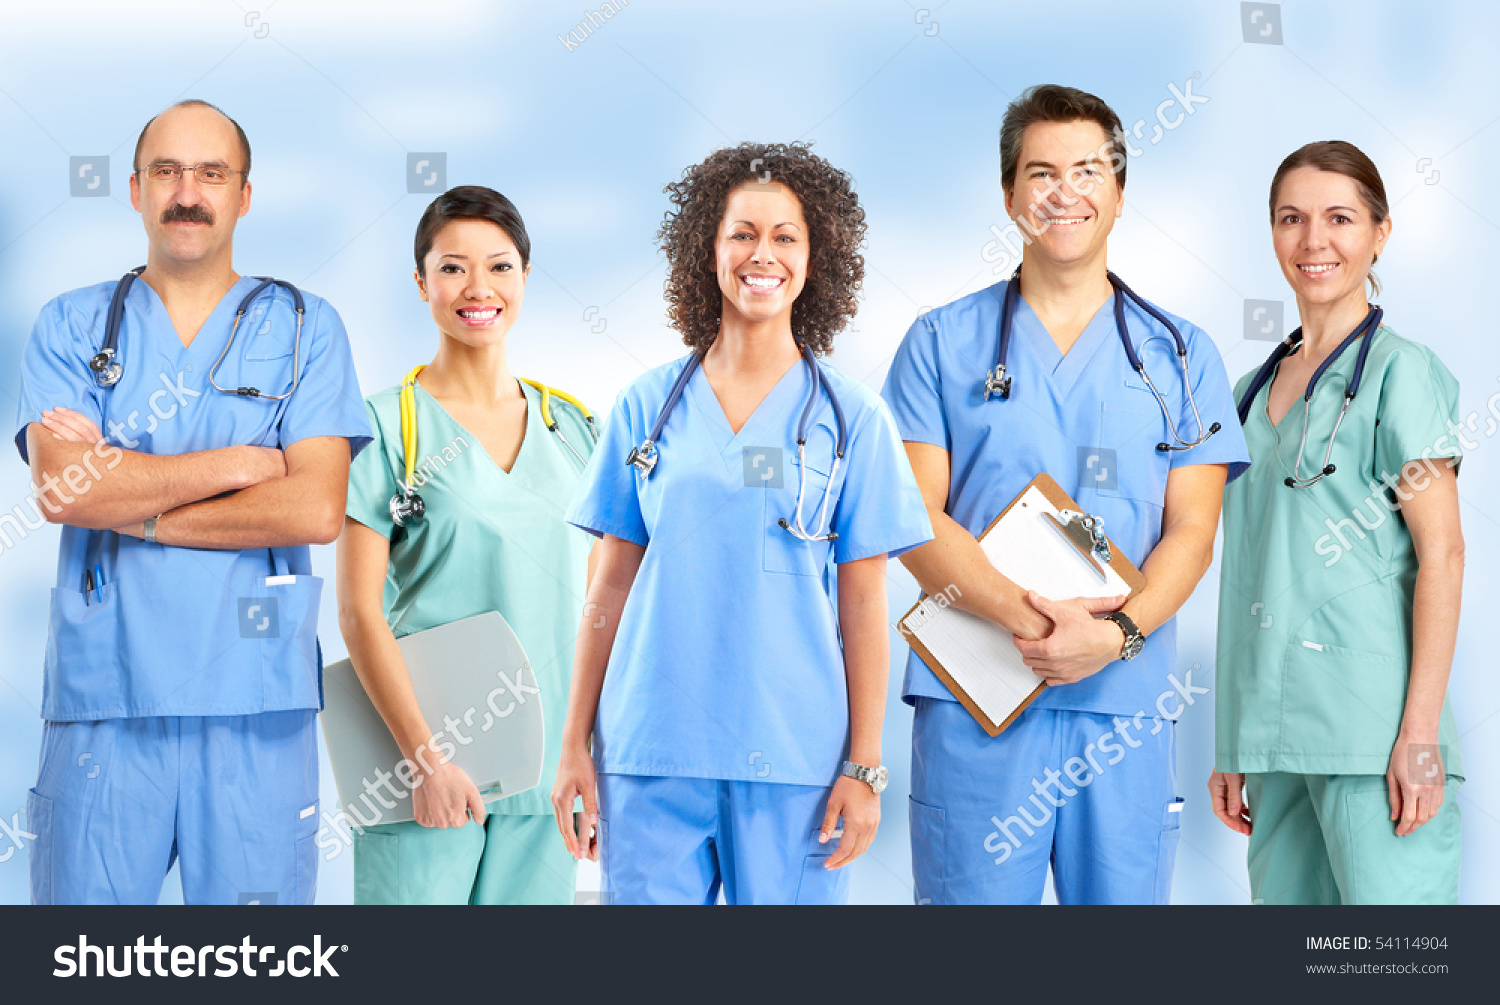 how to become a nurse in quebec from india